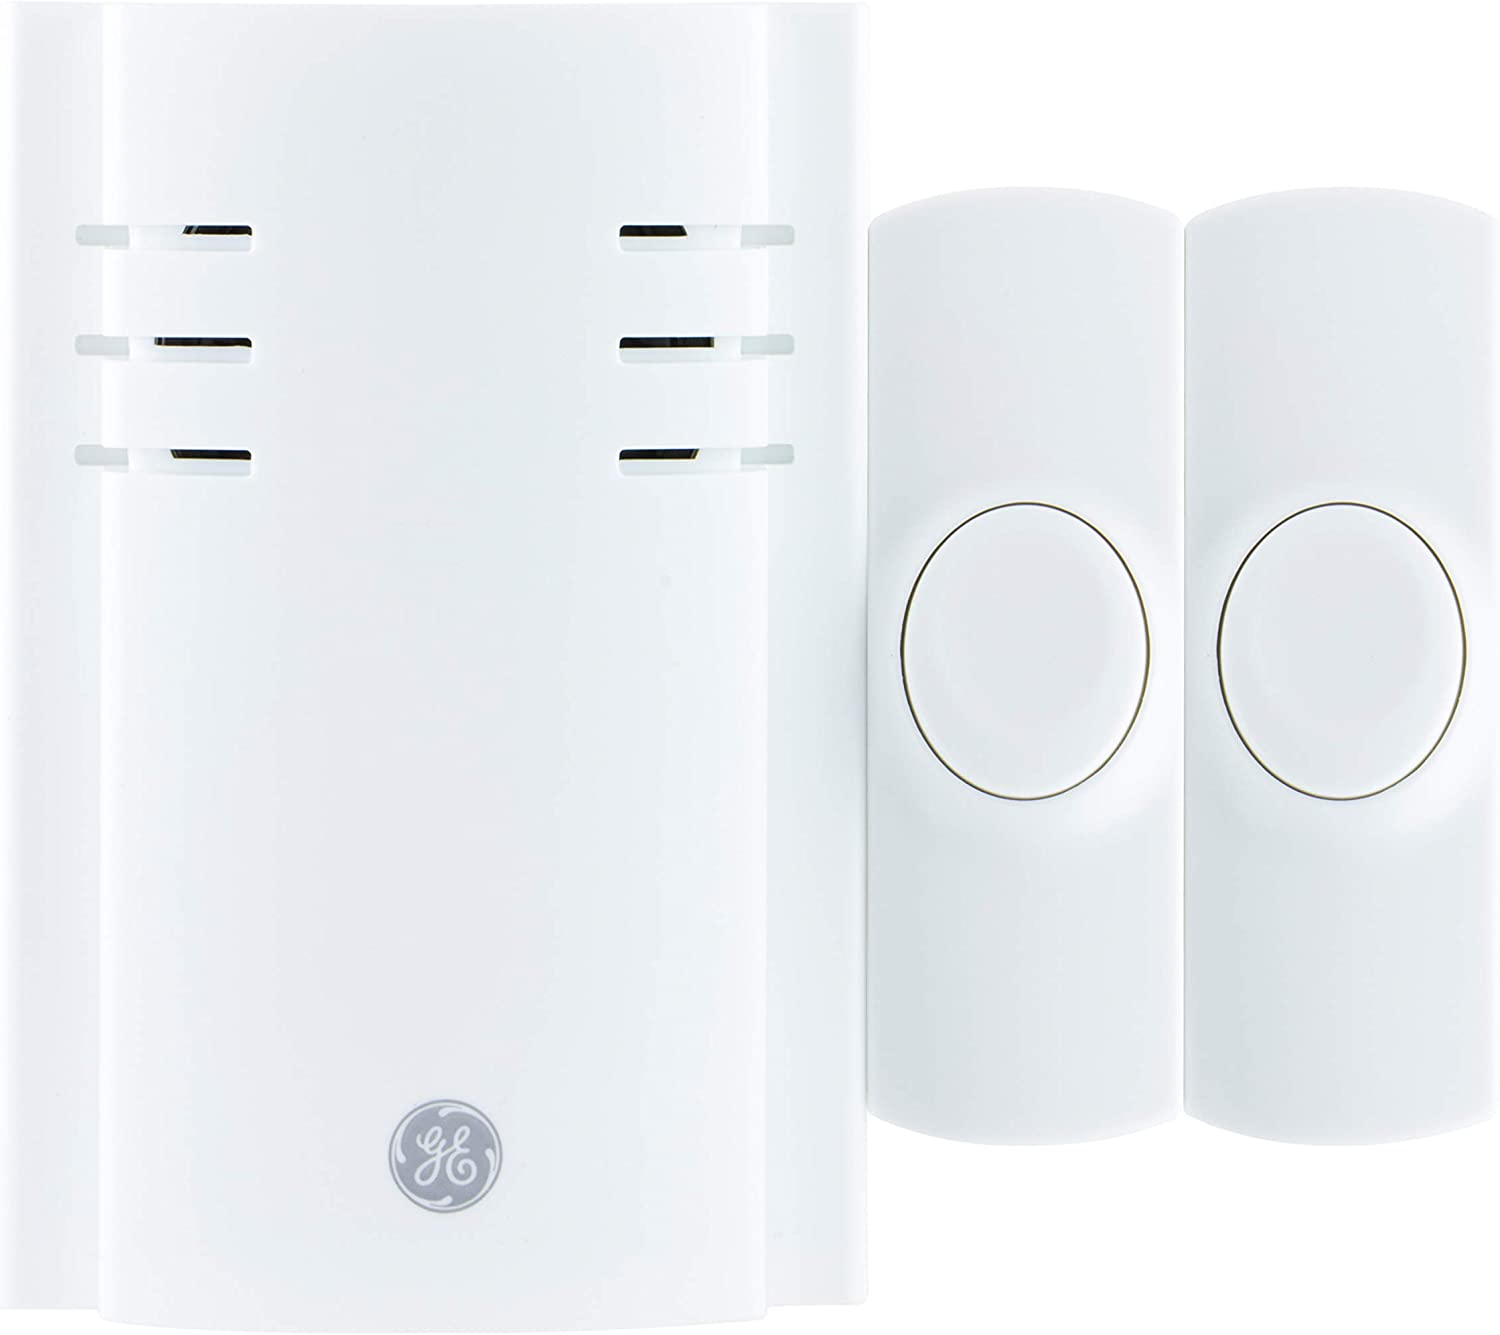 GE Wireless Doorbell Kit, 8 Melodies, 2 Push Buttons, 4 Volume Levels, 150 Ft. Range, White, 19300, Plug-In Receiver